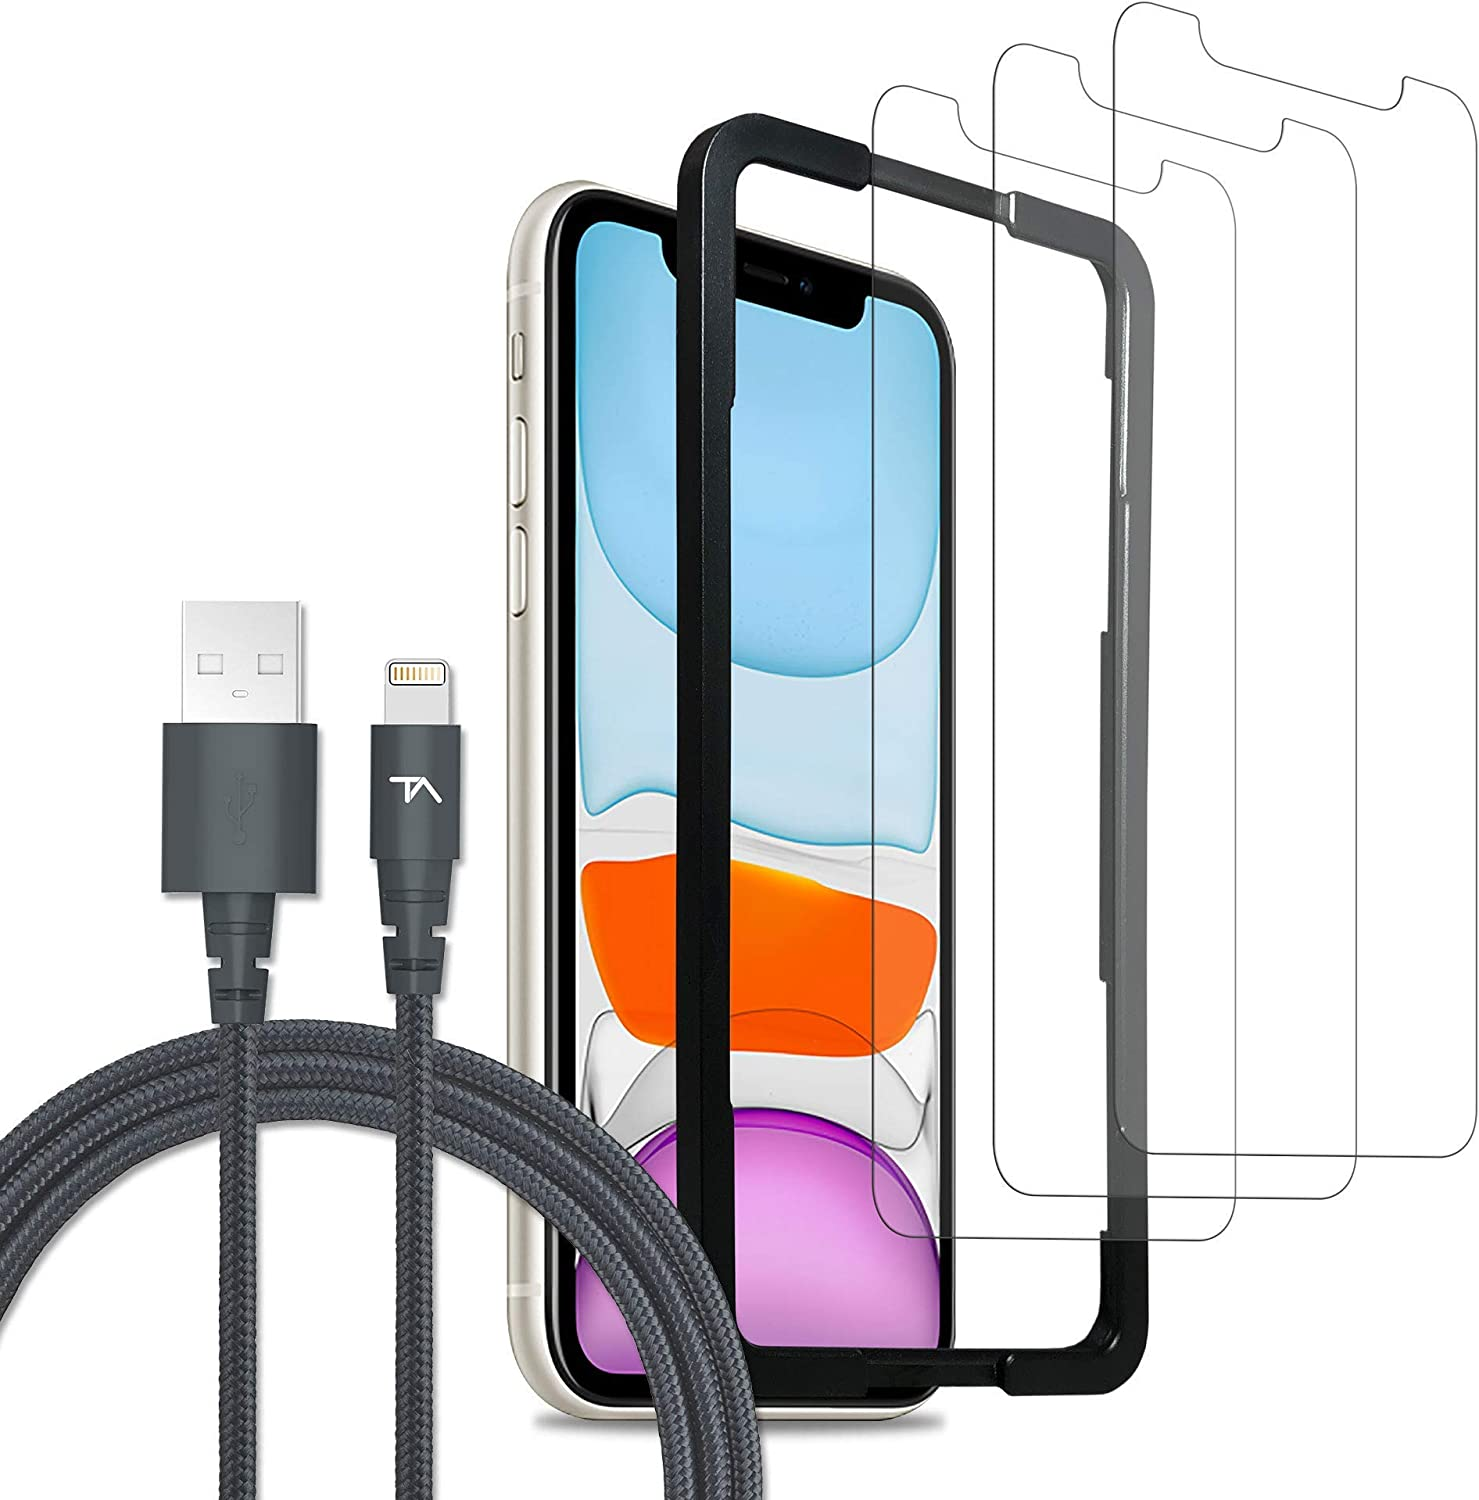 Tech Armor Ultimate Protection Bundle for Apple iPhone 11 / iPhone Xr - Apple MFi Certified Lightning Cable [2 FT, Space Gray] and Ballistic Glass Screen Protector [3-Pack] with Easy Installation Tray